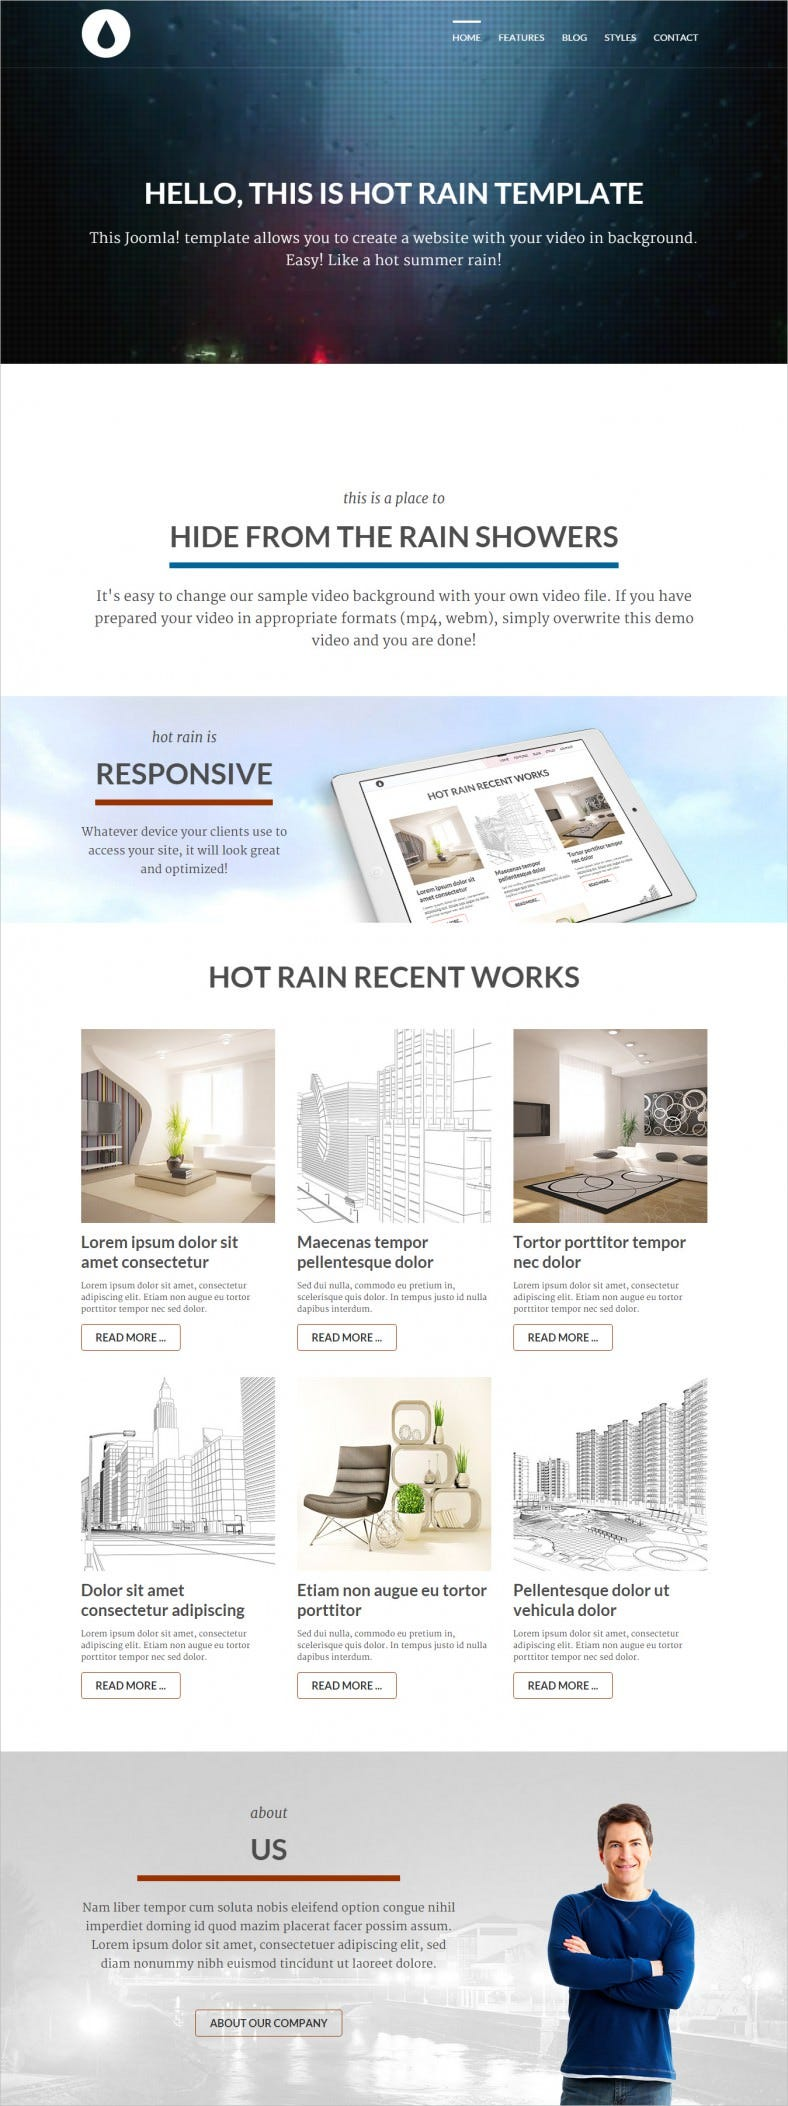 hot rain template with video background 788x2106